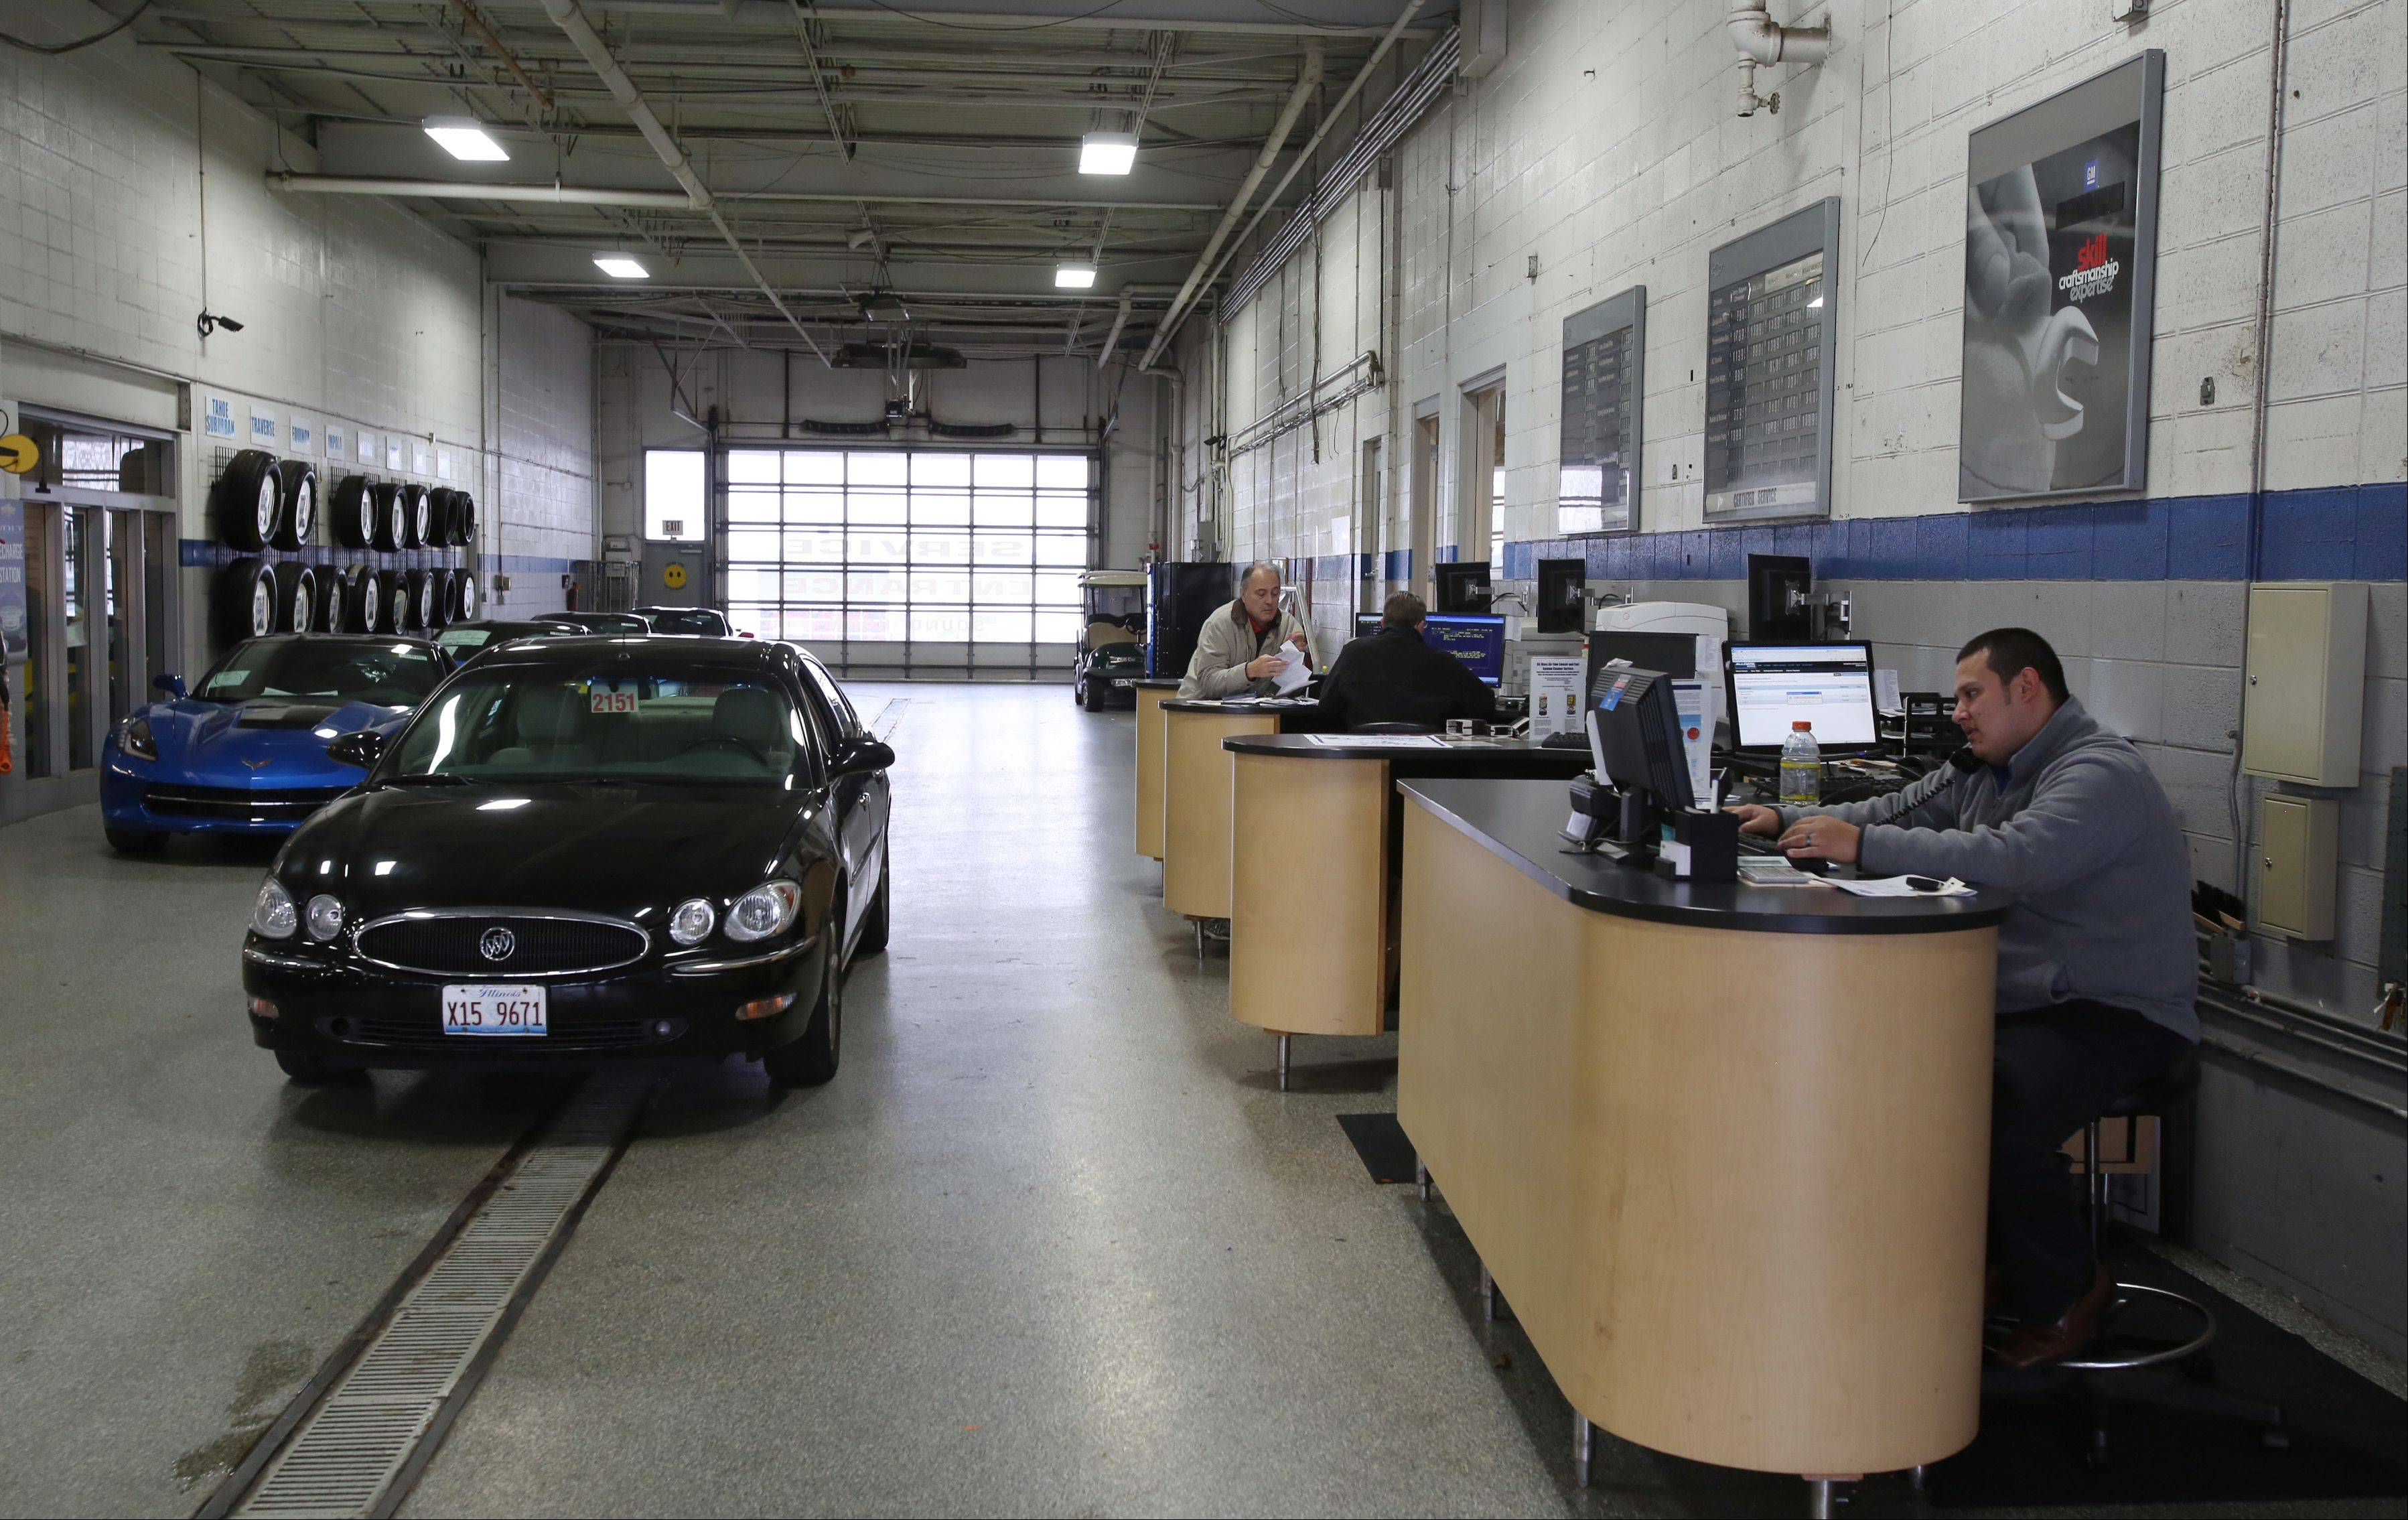 The service department at Biggers Chevrolet offers buyers of new vehicles free car washes for life.